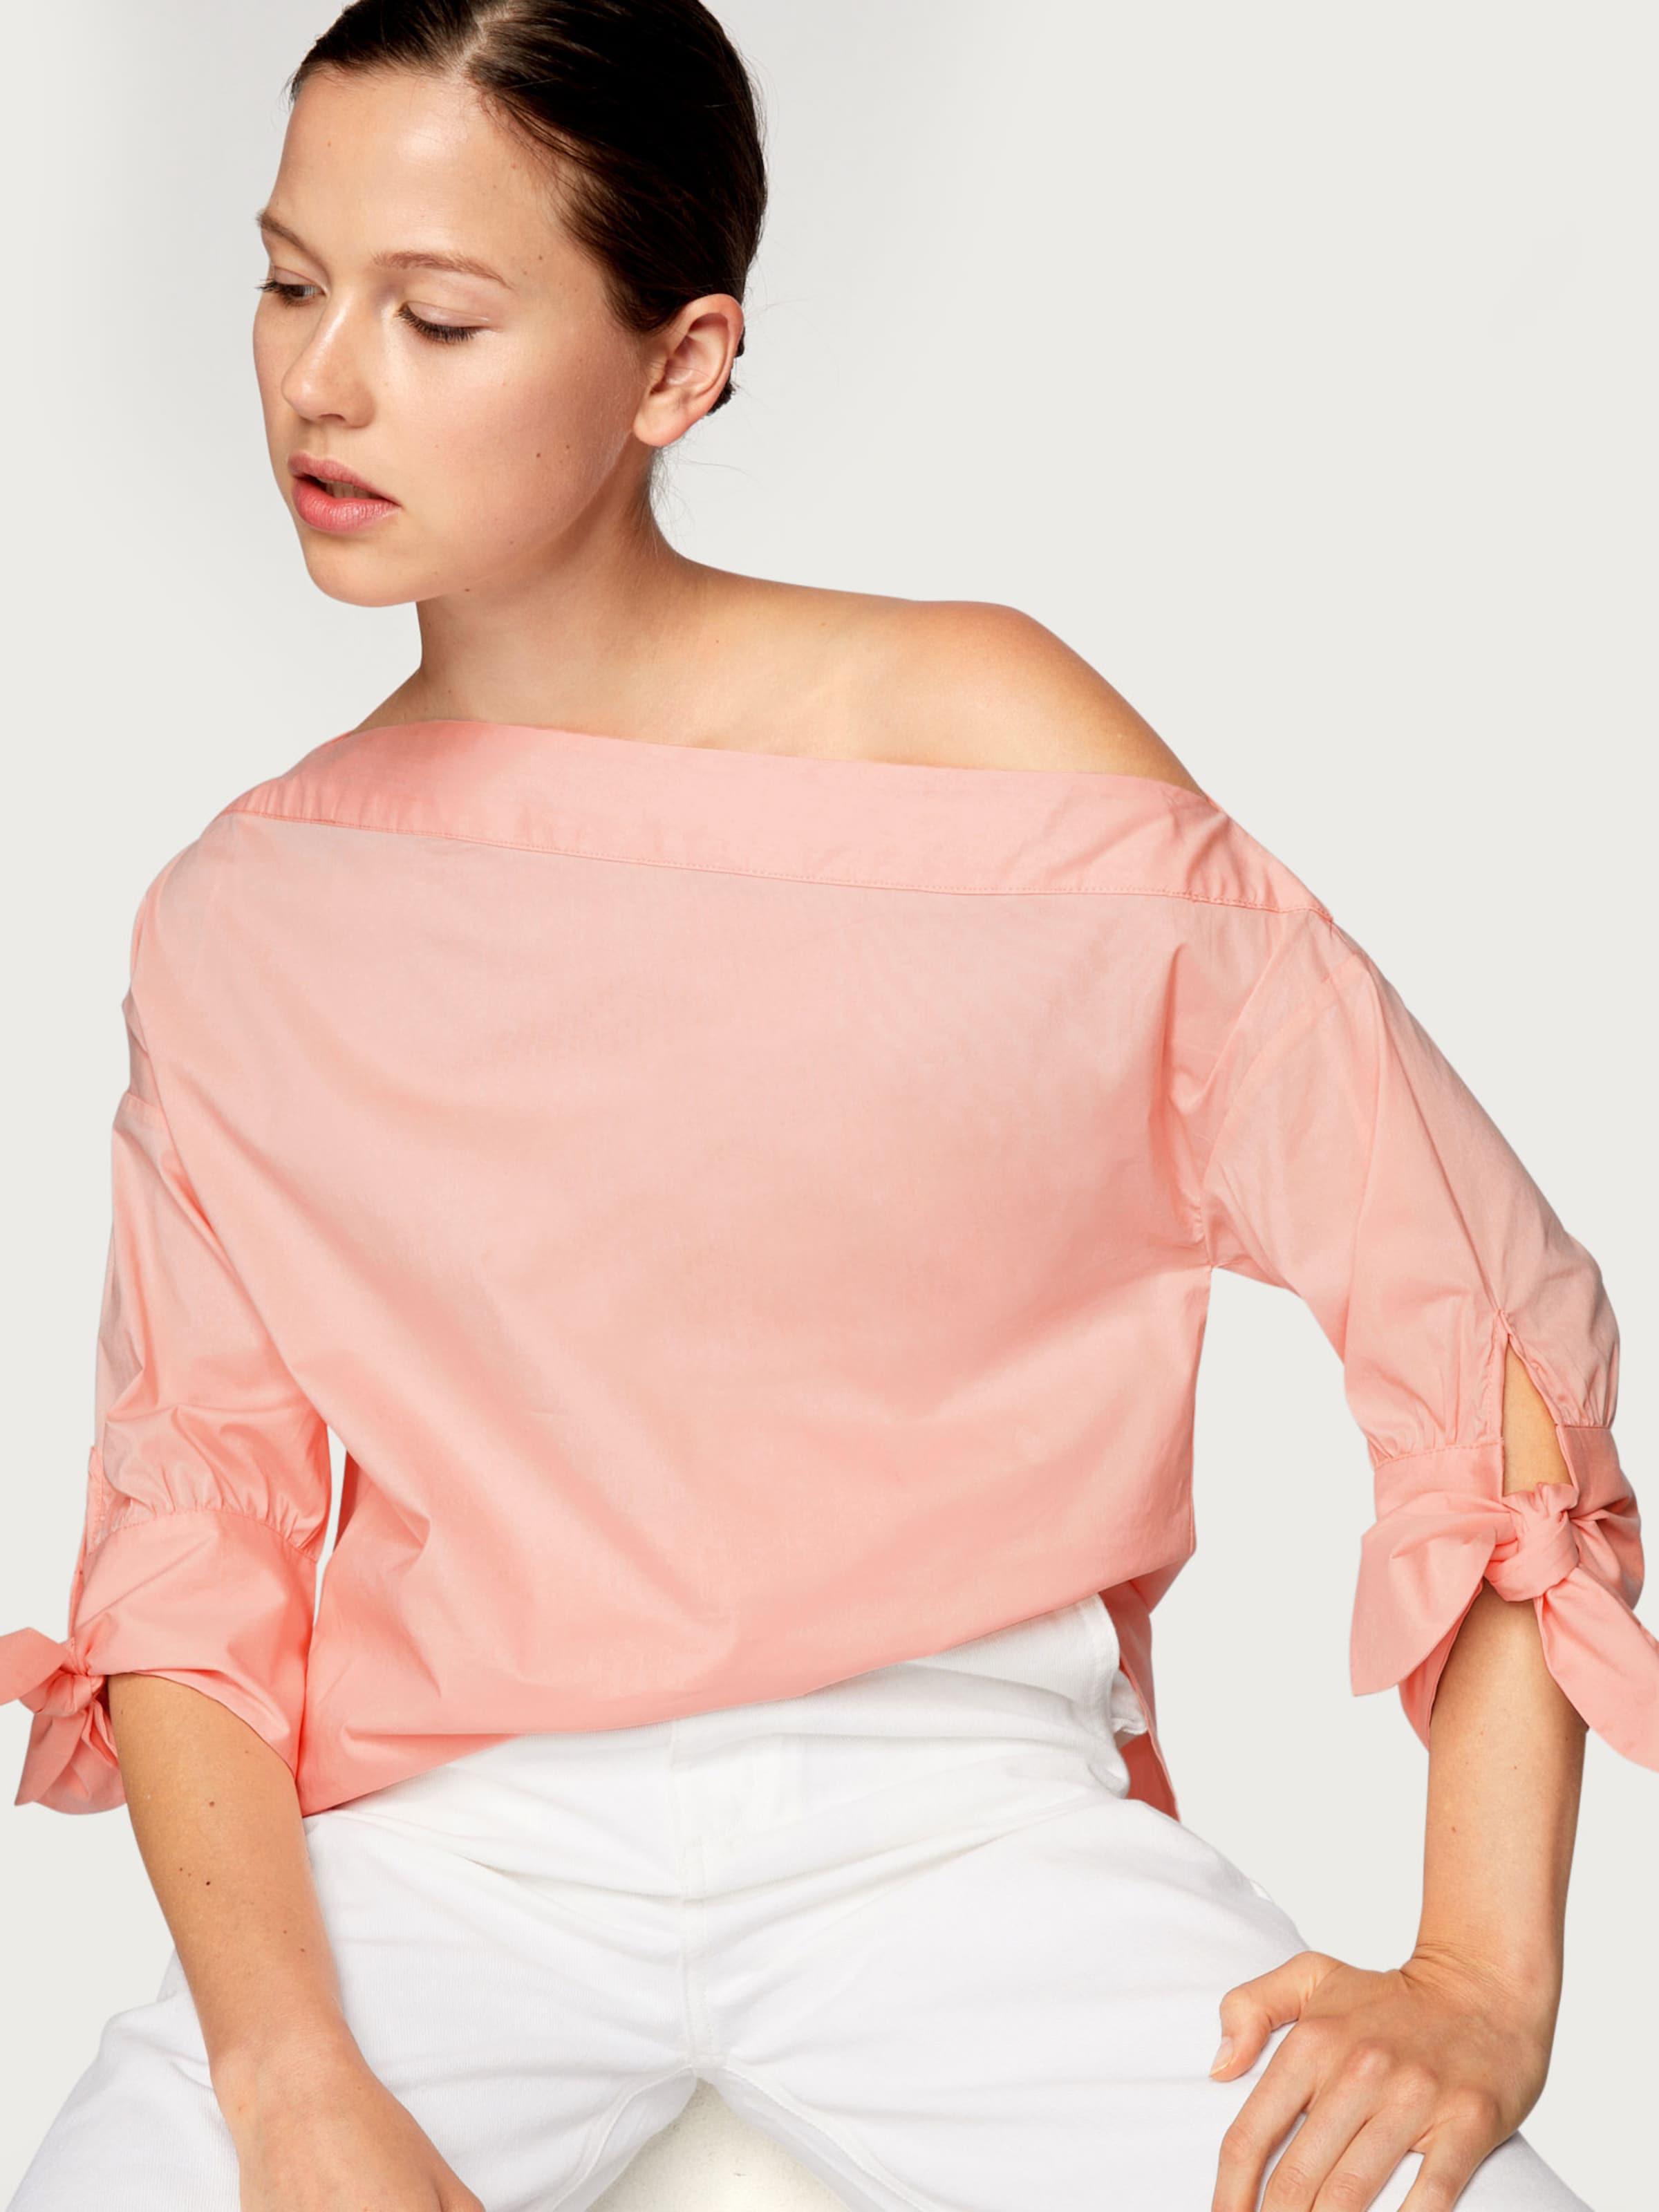 Abrikoos Edited Blouse Abrikoos In Blouse 'hanni' In Edited Edited 'hanni' shdQrtCx